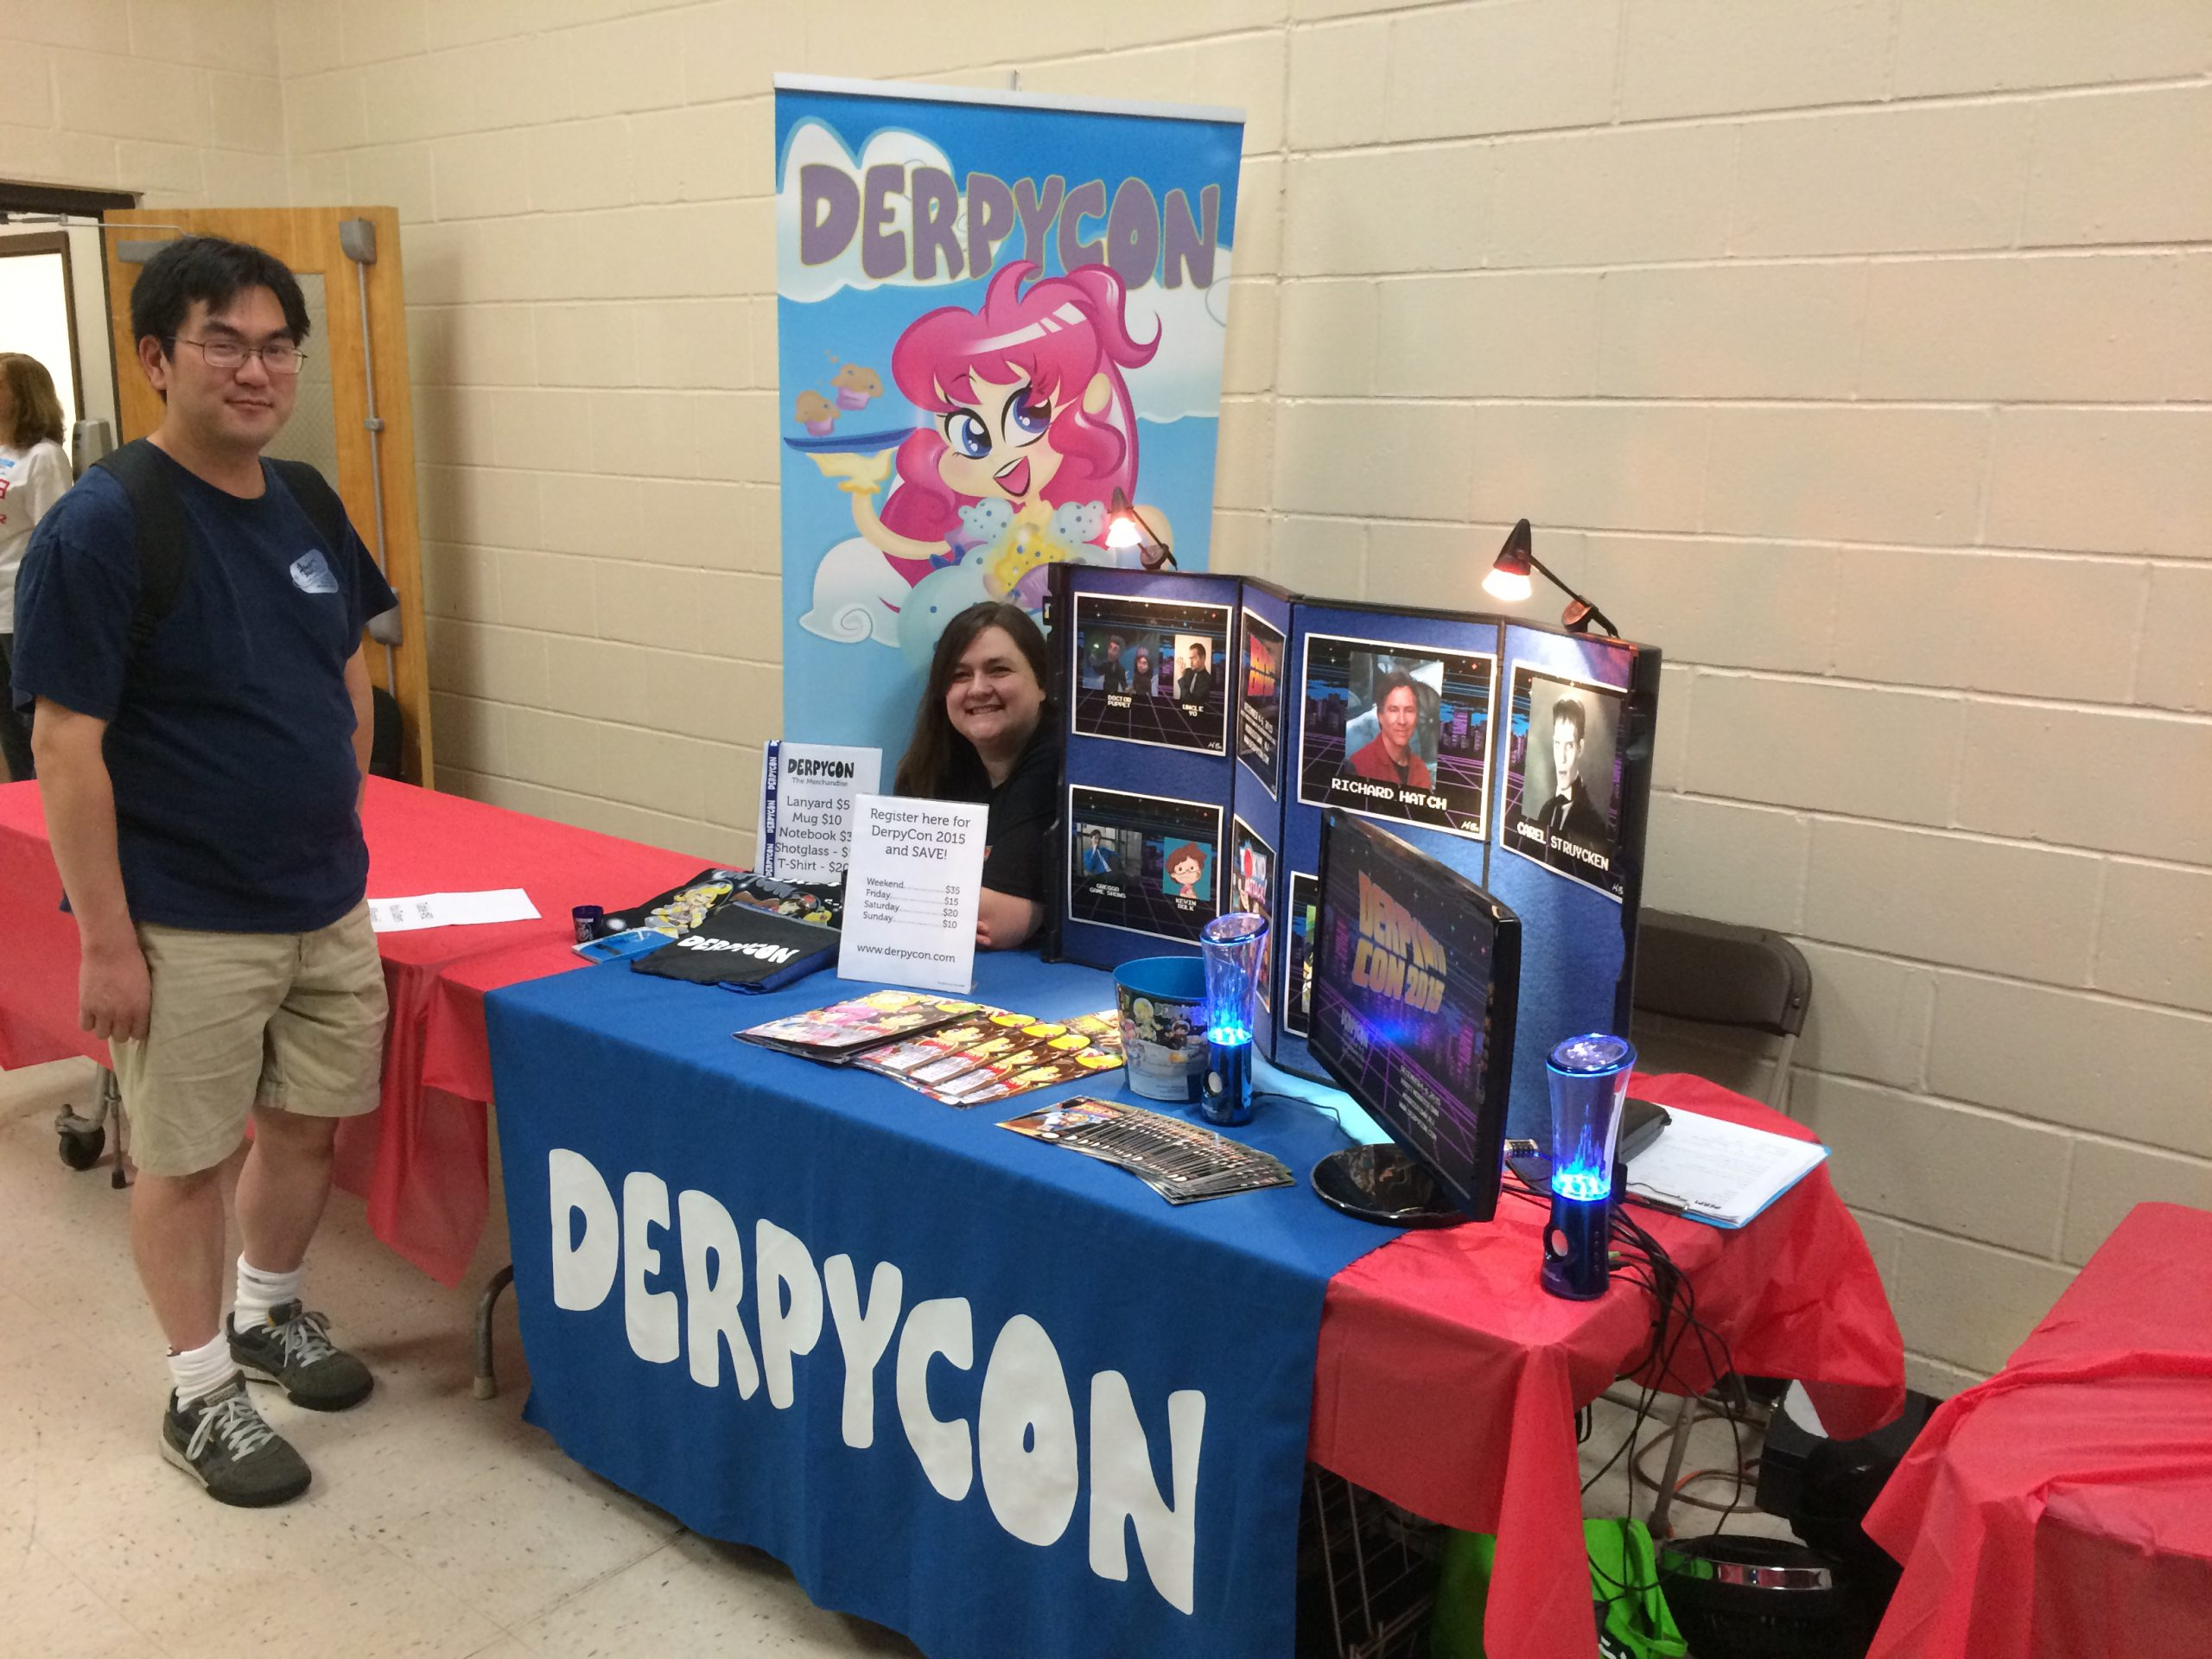 DerpyCon is at A Video Game Con